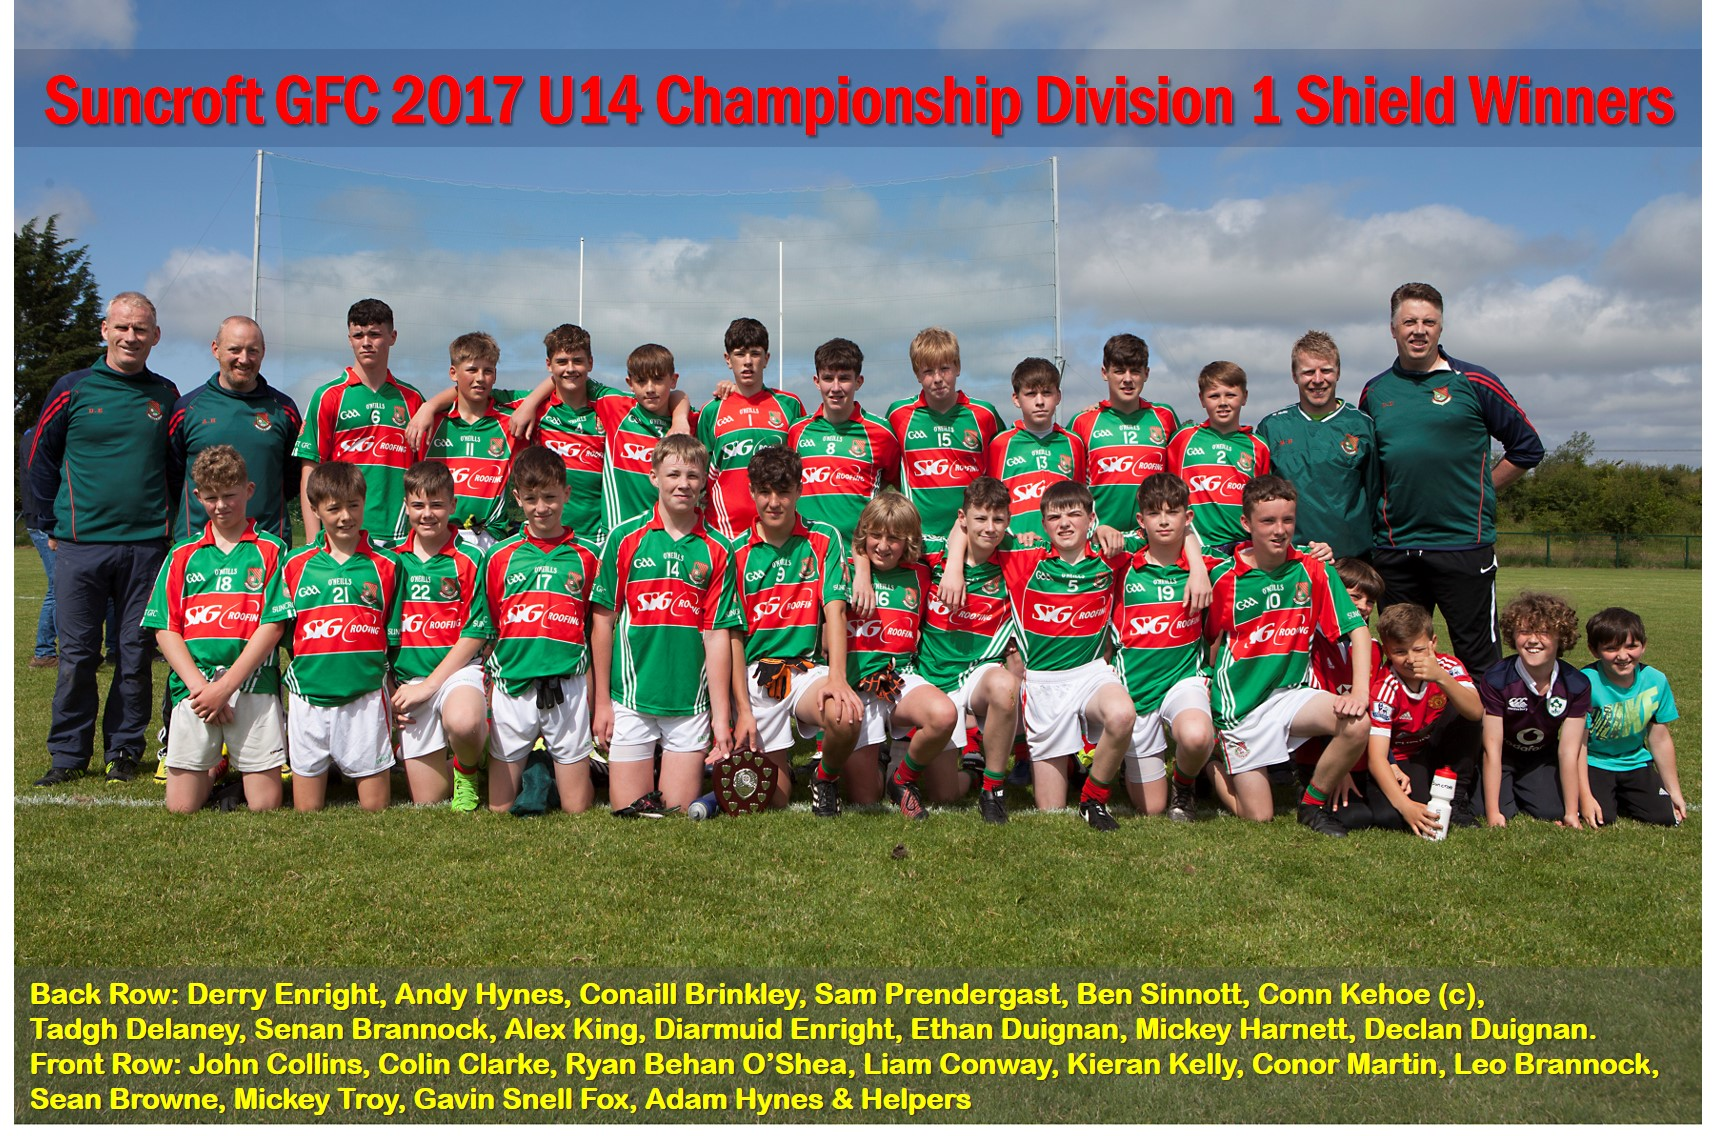 U14 Championship D1 Shield Winners